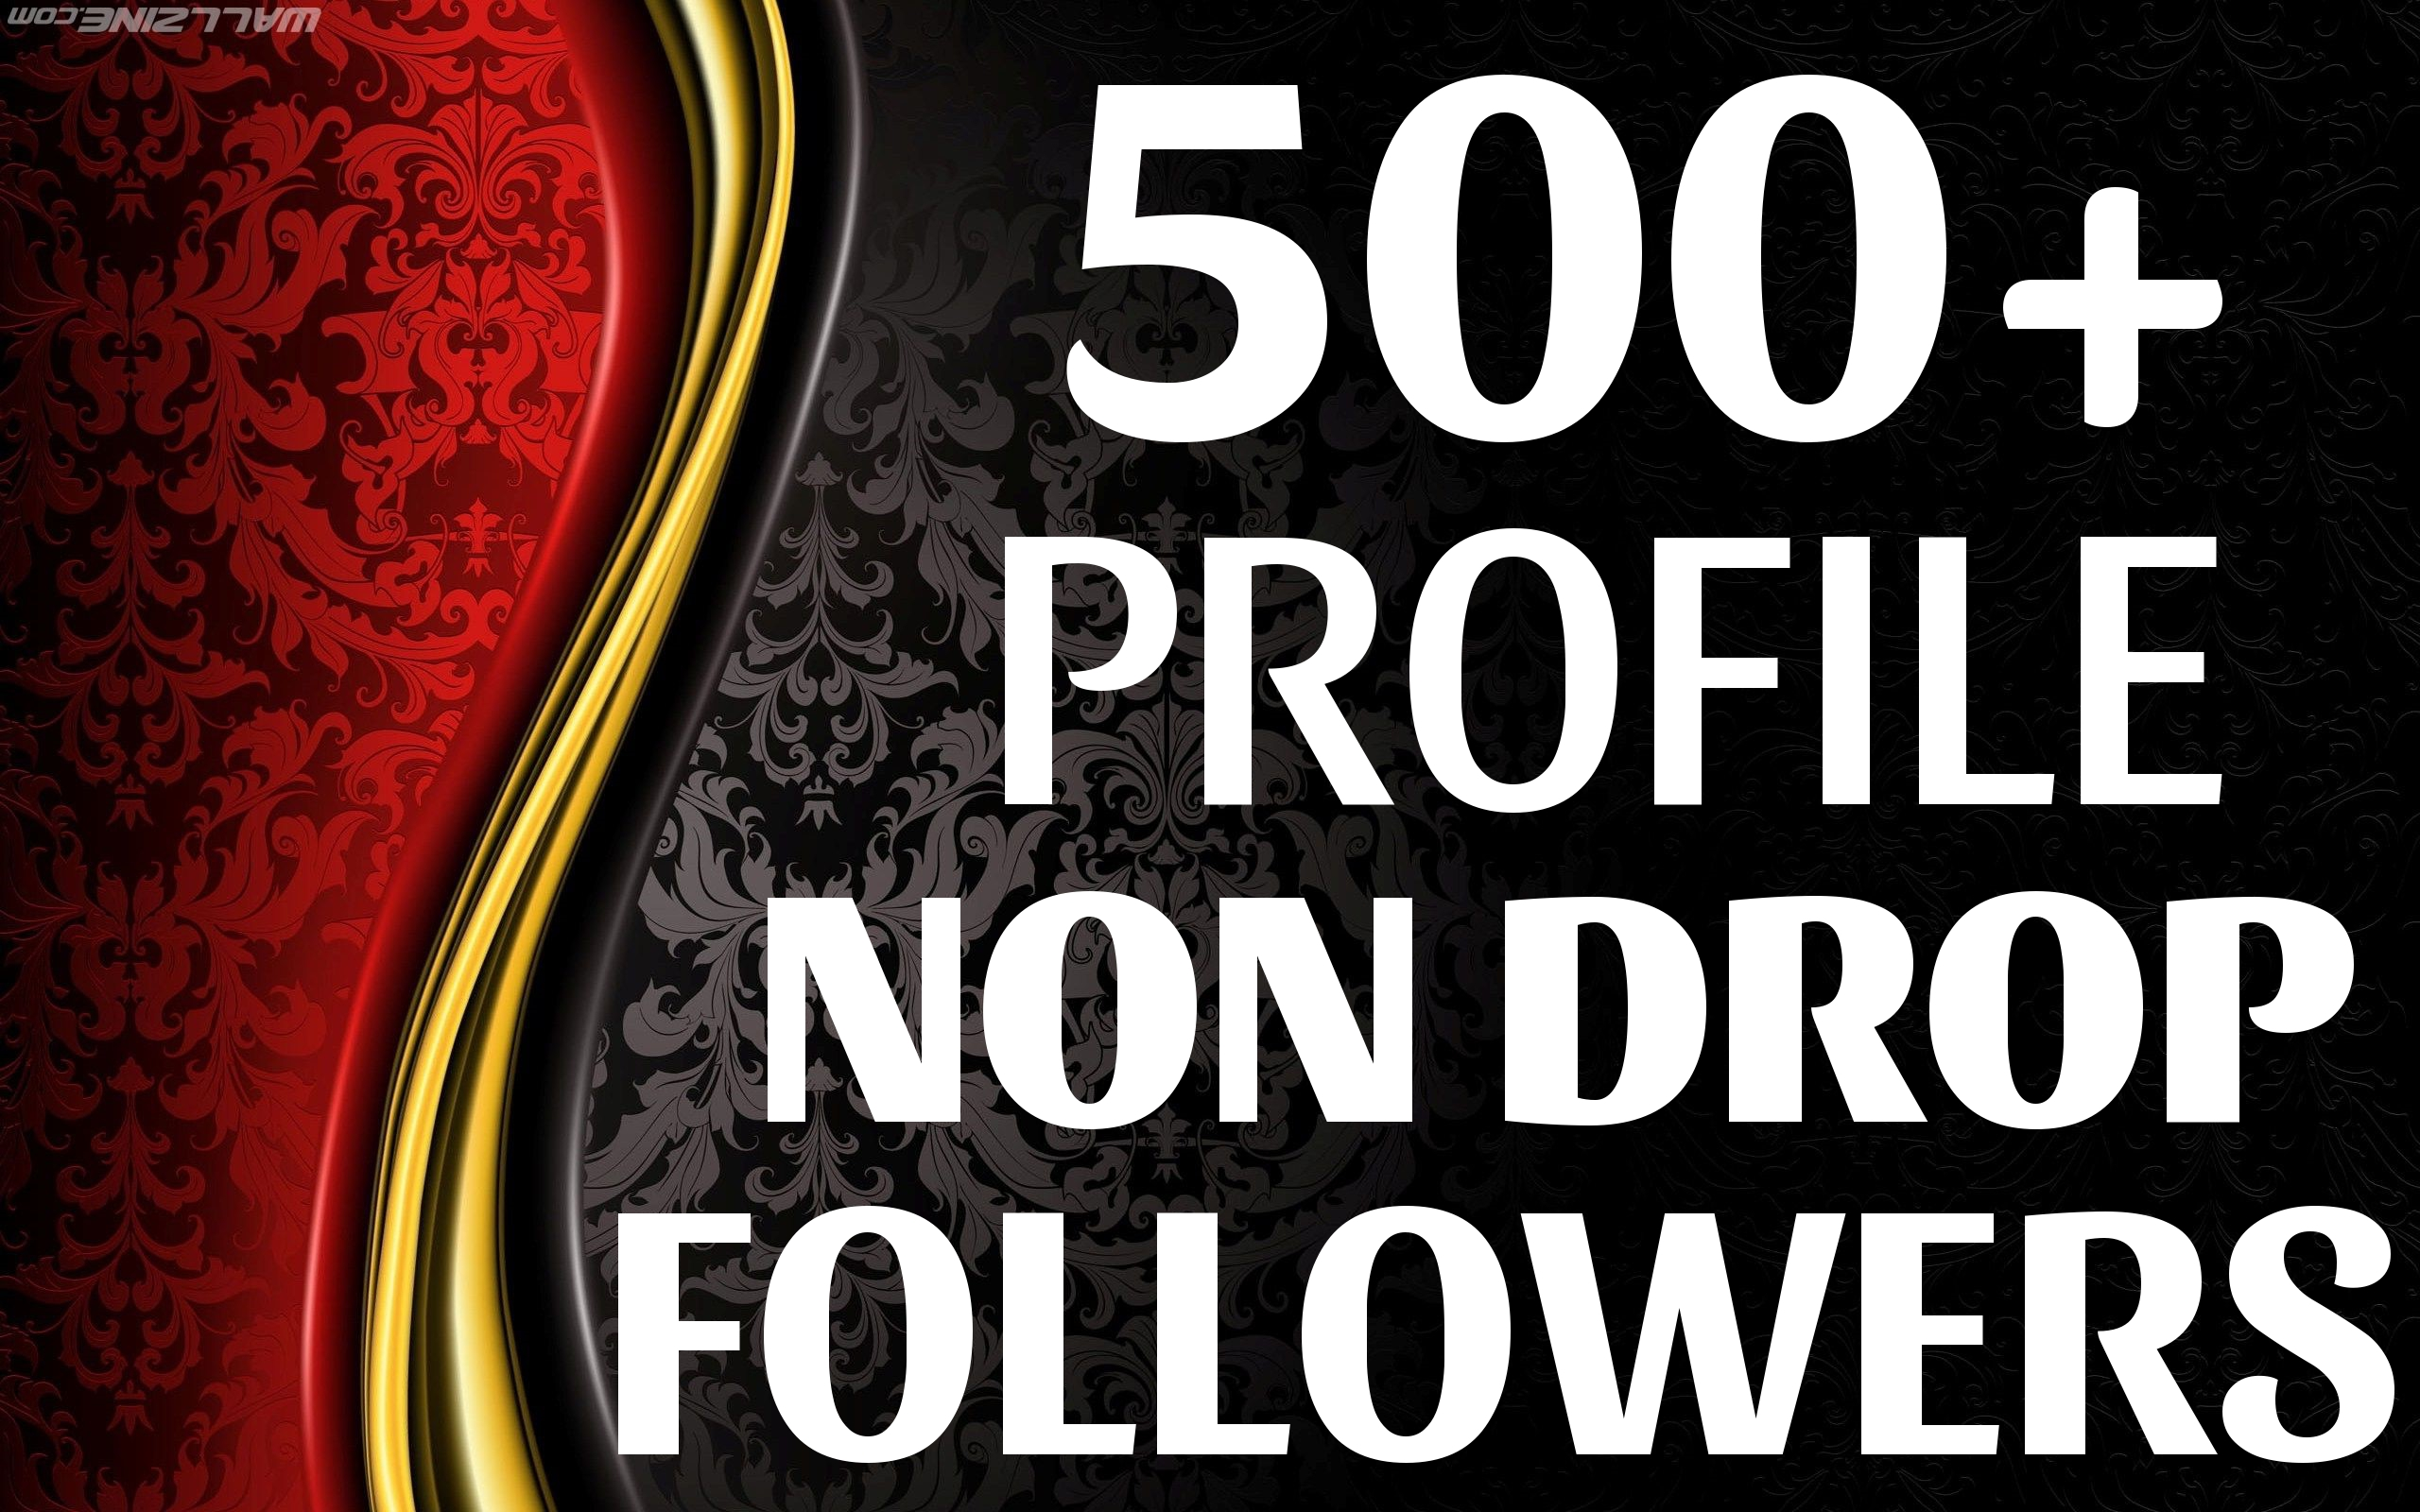 Add 500+ High Quality Fast Profile Followers NON DROP to Your Account